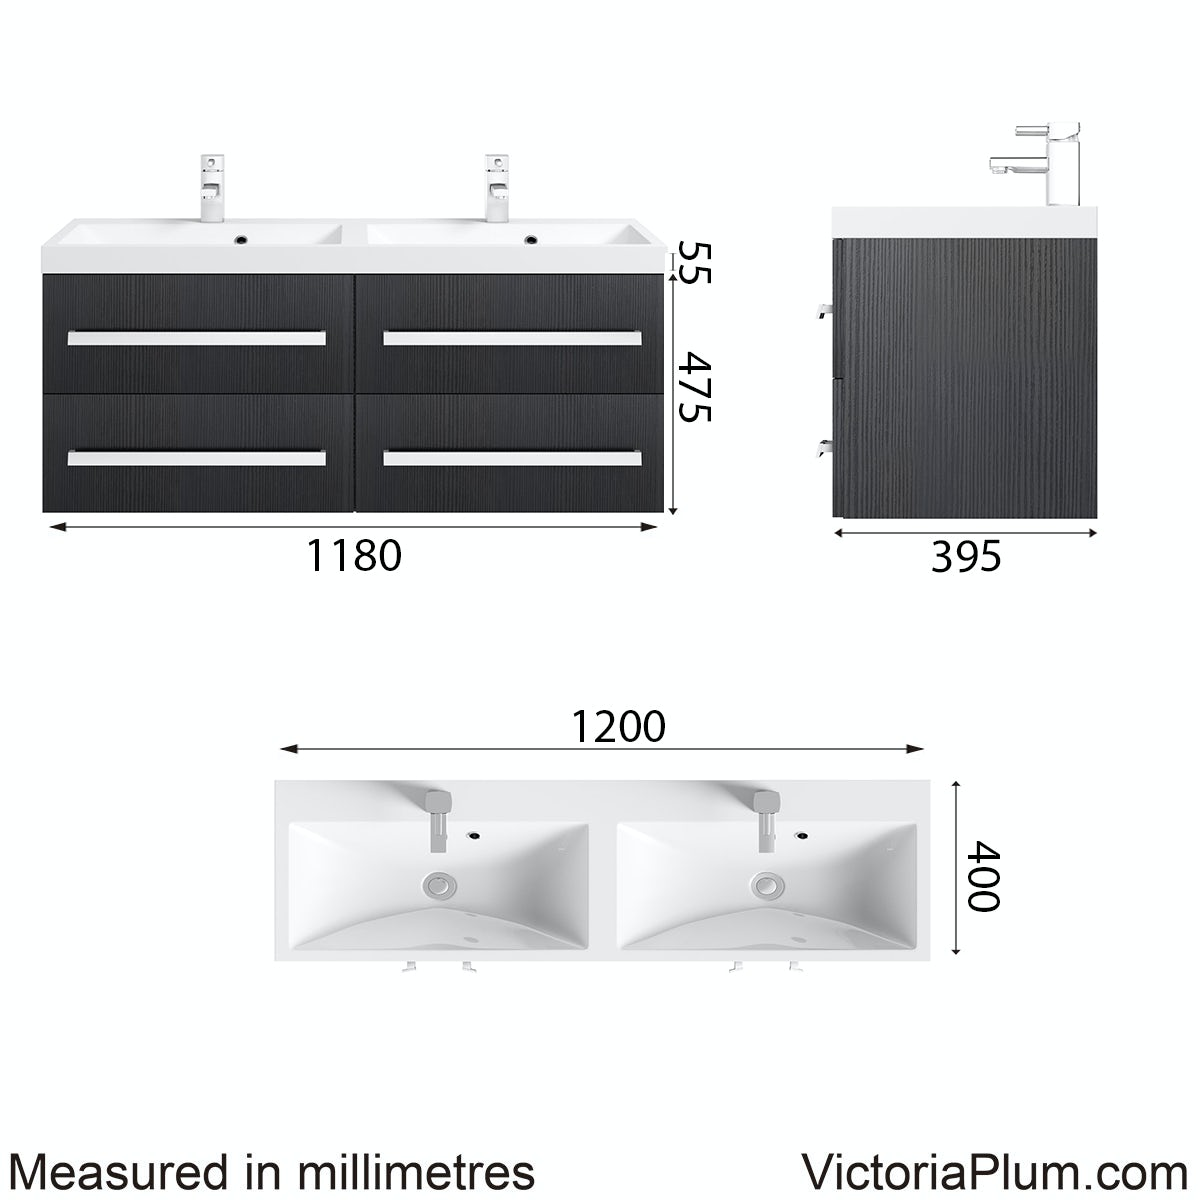 Dimensions for Arden essen wall hung double basin unit 1200mm